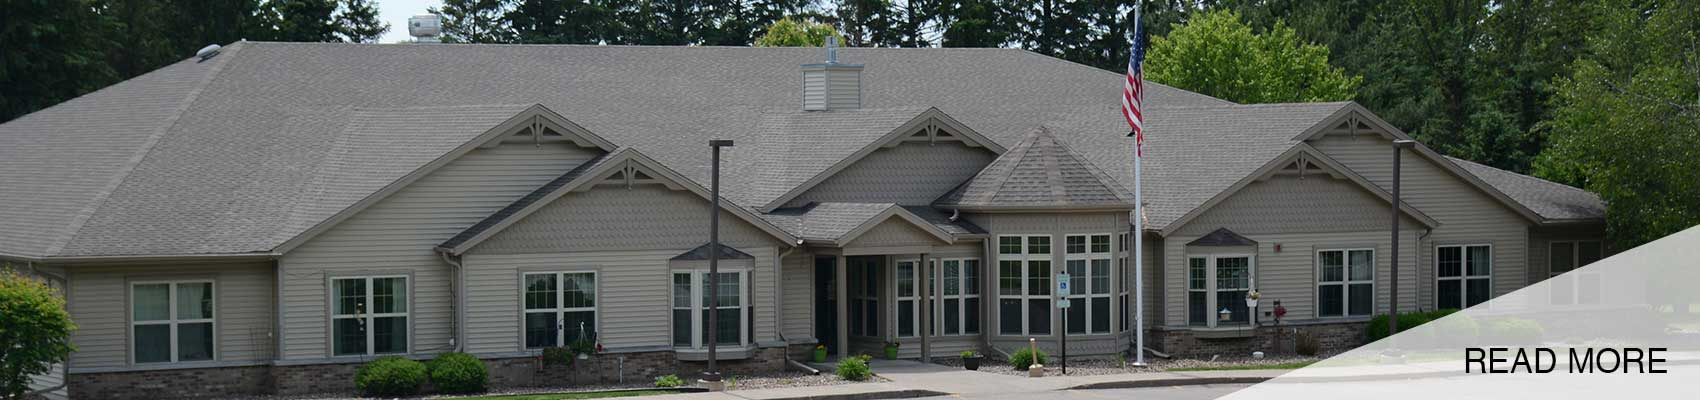 Copperleaf Senior Living   in Ripon, WI